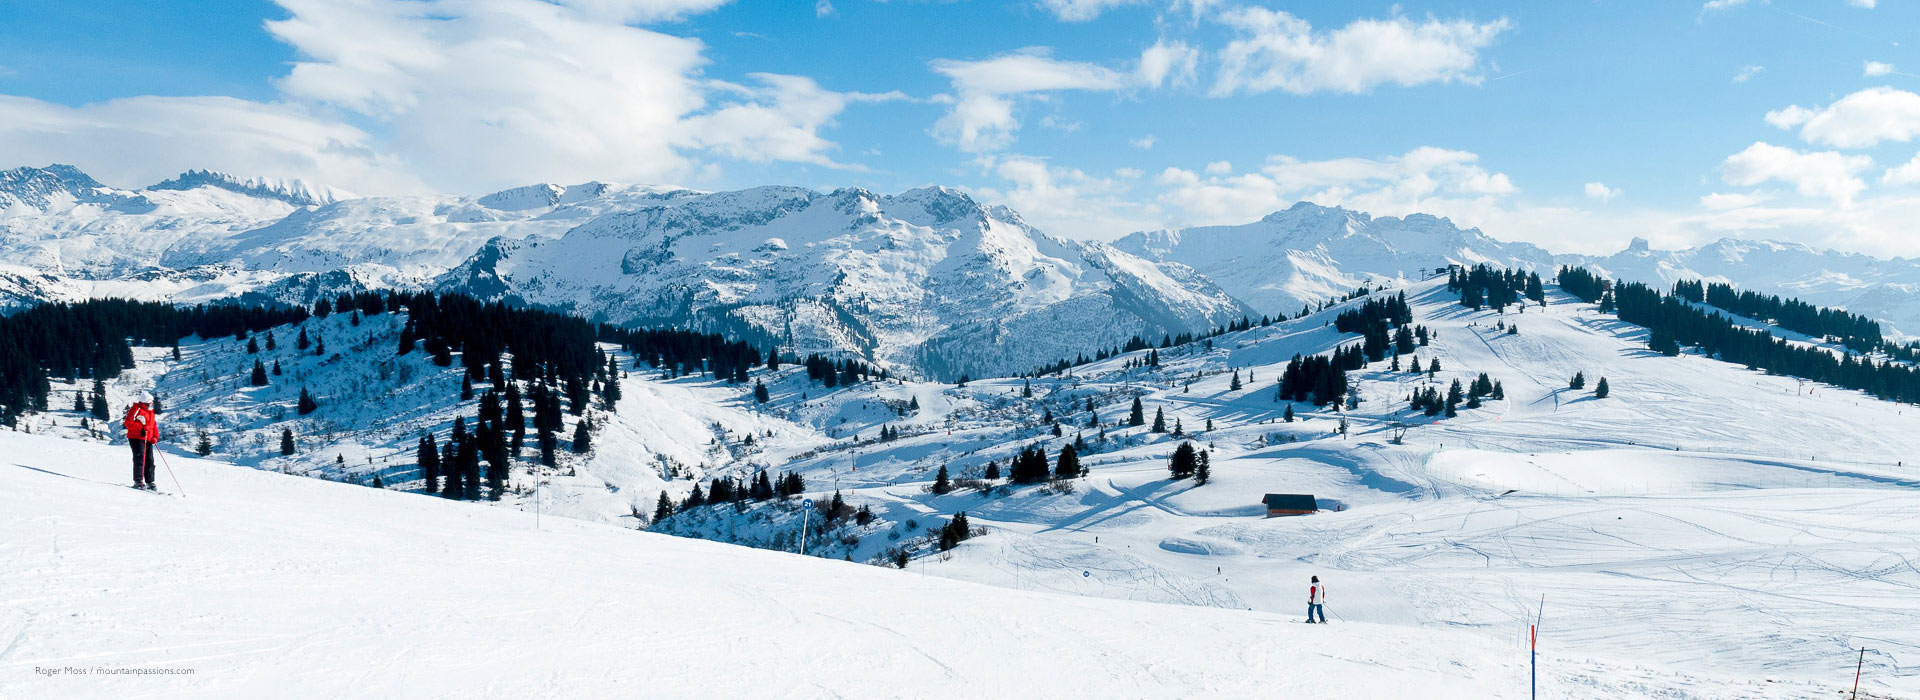 Skiers on wide piste with panoramic view of mountain landscapes at Les Saisies